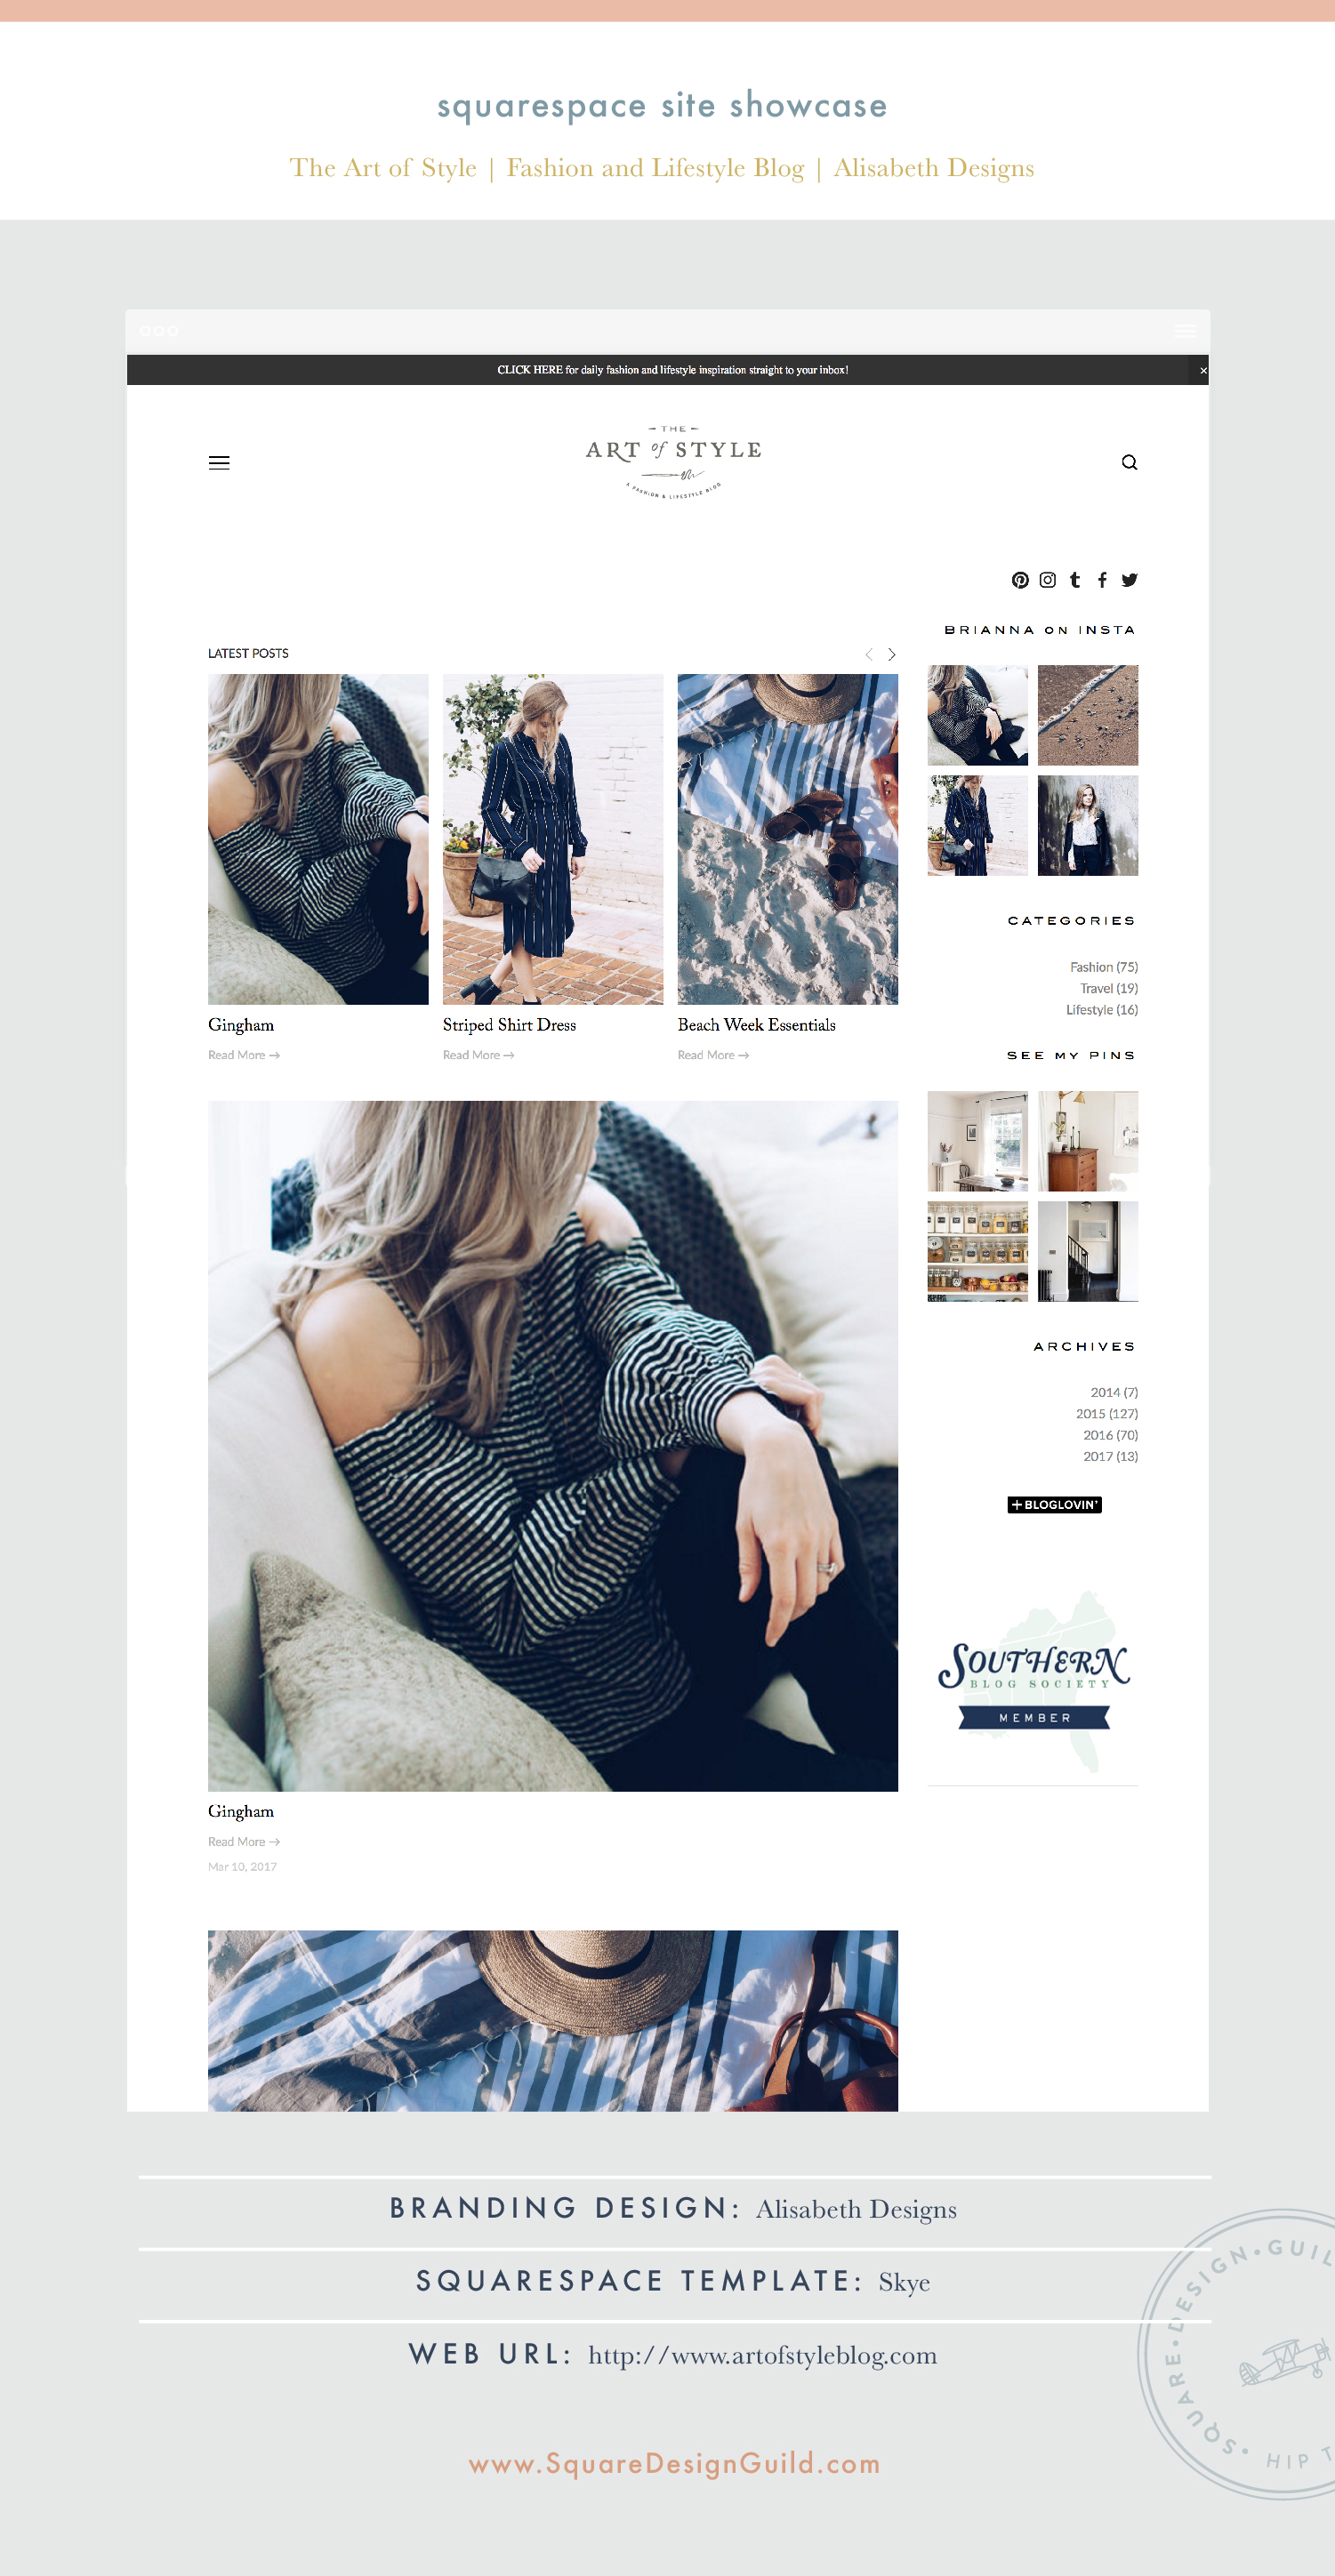 Square Design Guild | Squarespace Site Showcase: The Art of Style | Fashion & Lifestyle Blog on Skye